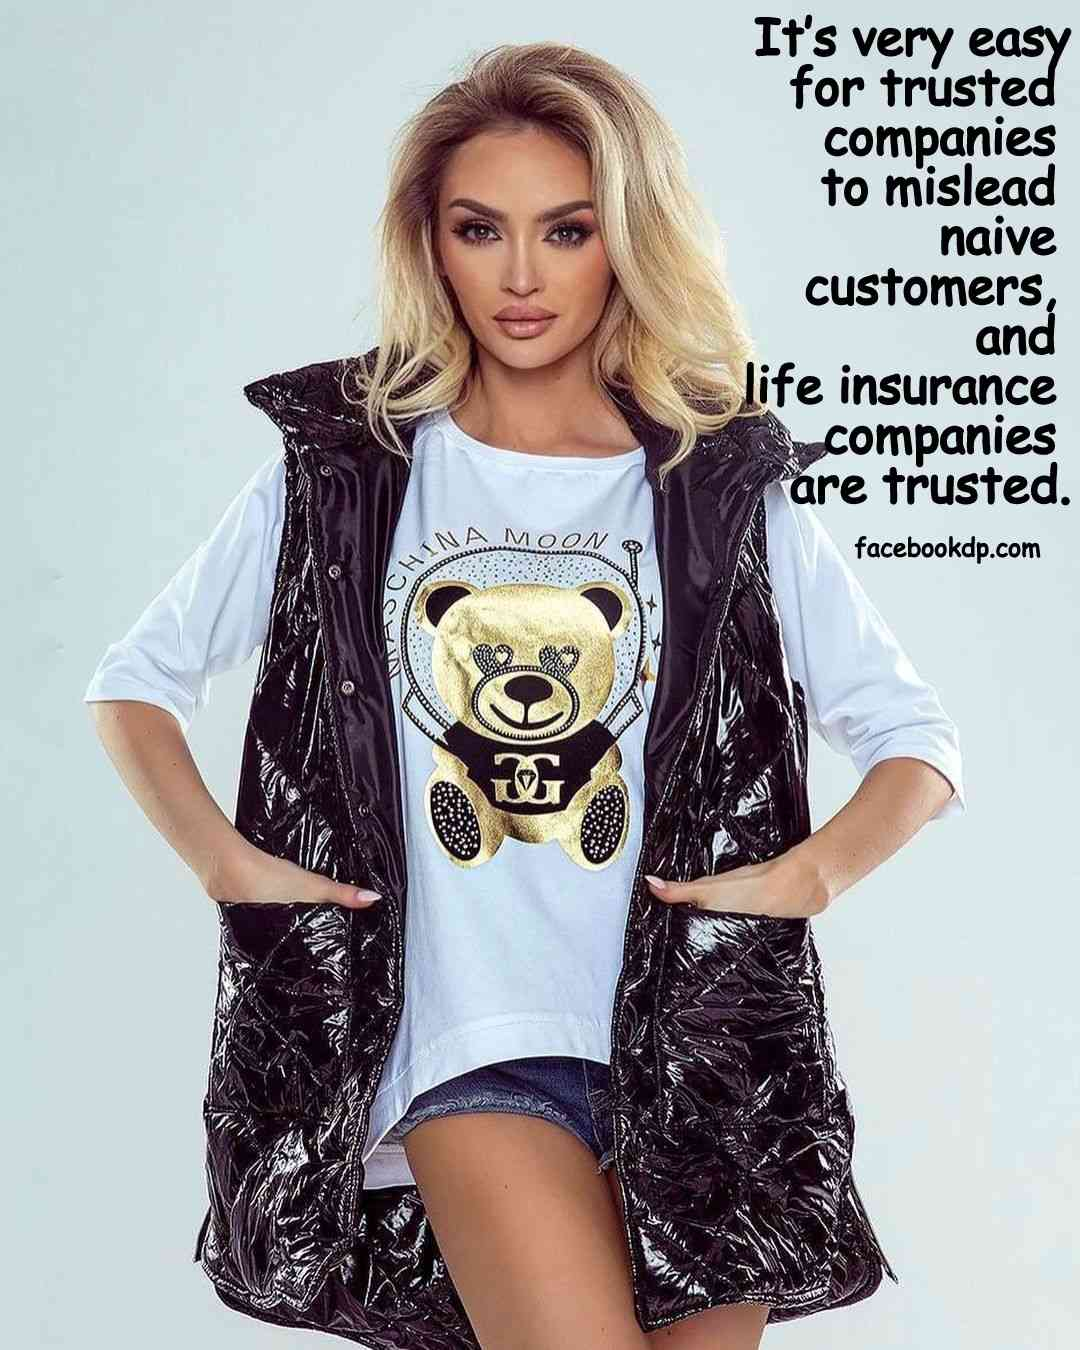 Insurance Quotes with Instagram Models